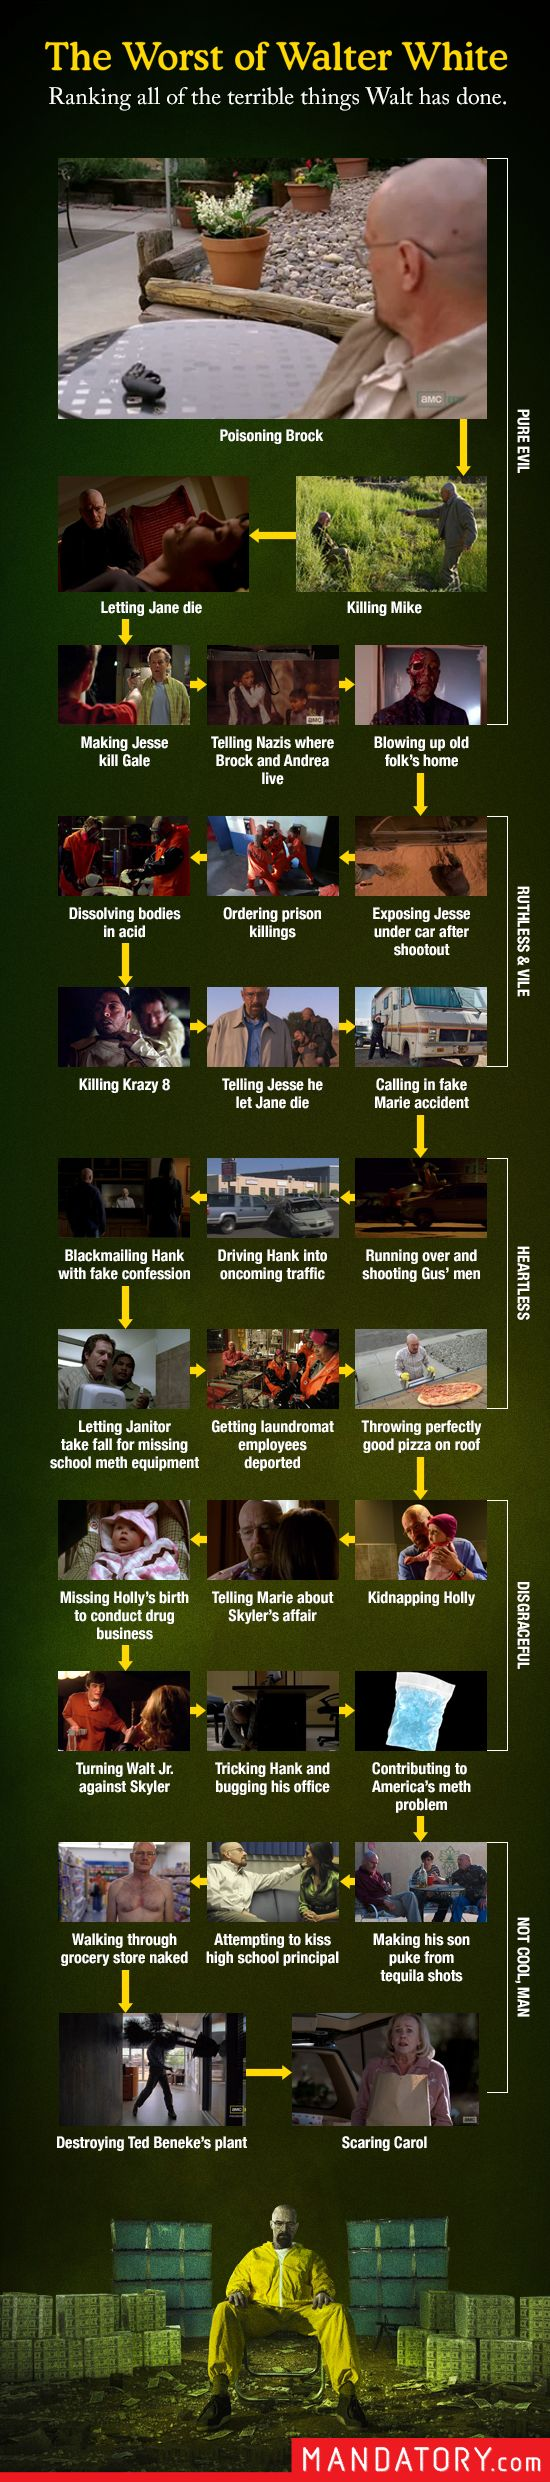 Breaking Bad - not sure I agree with the order but the list looks pretty comprehensive